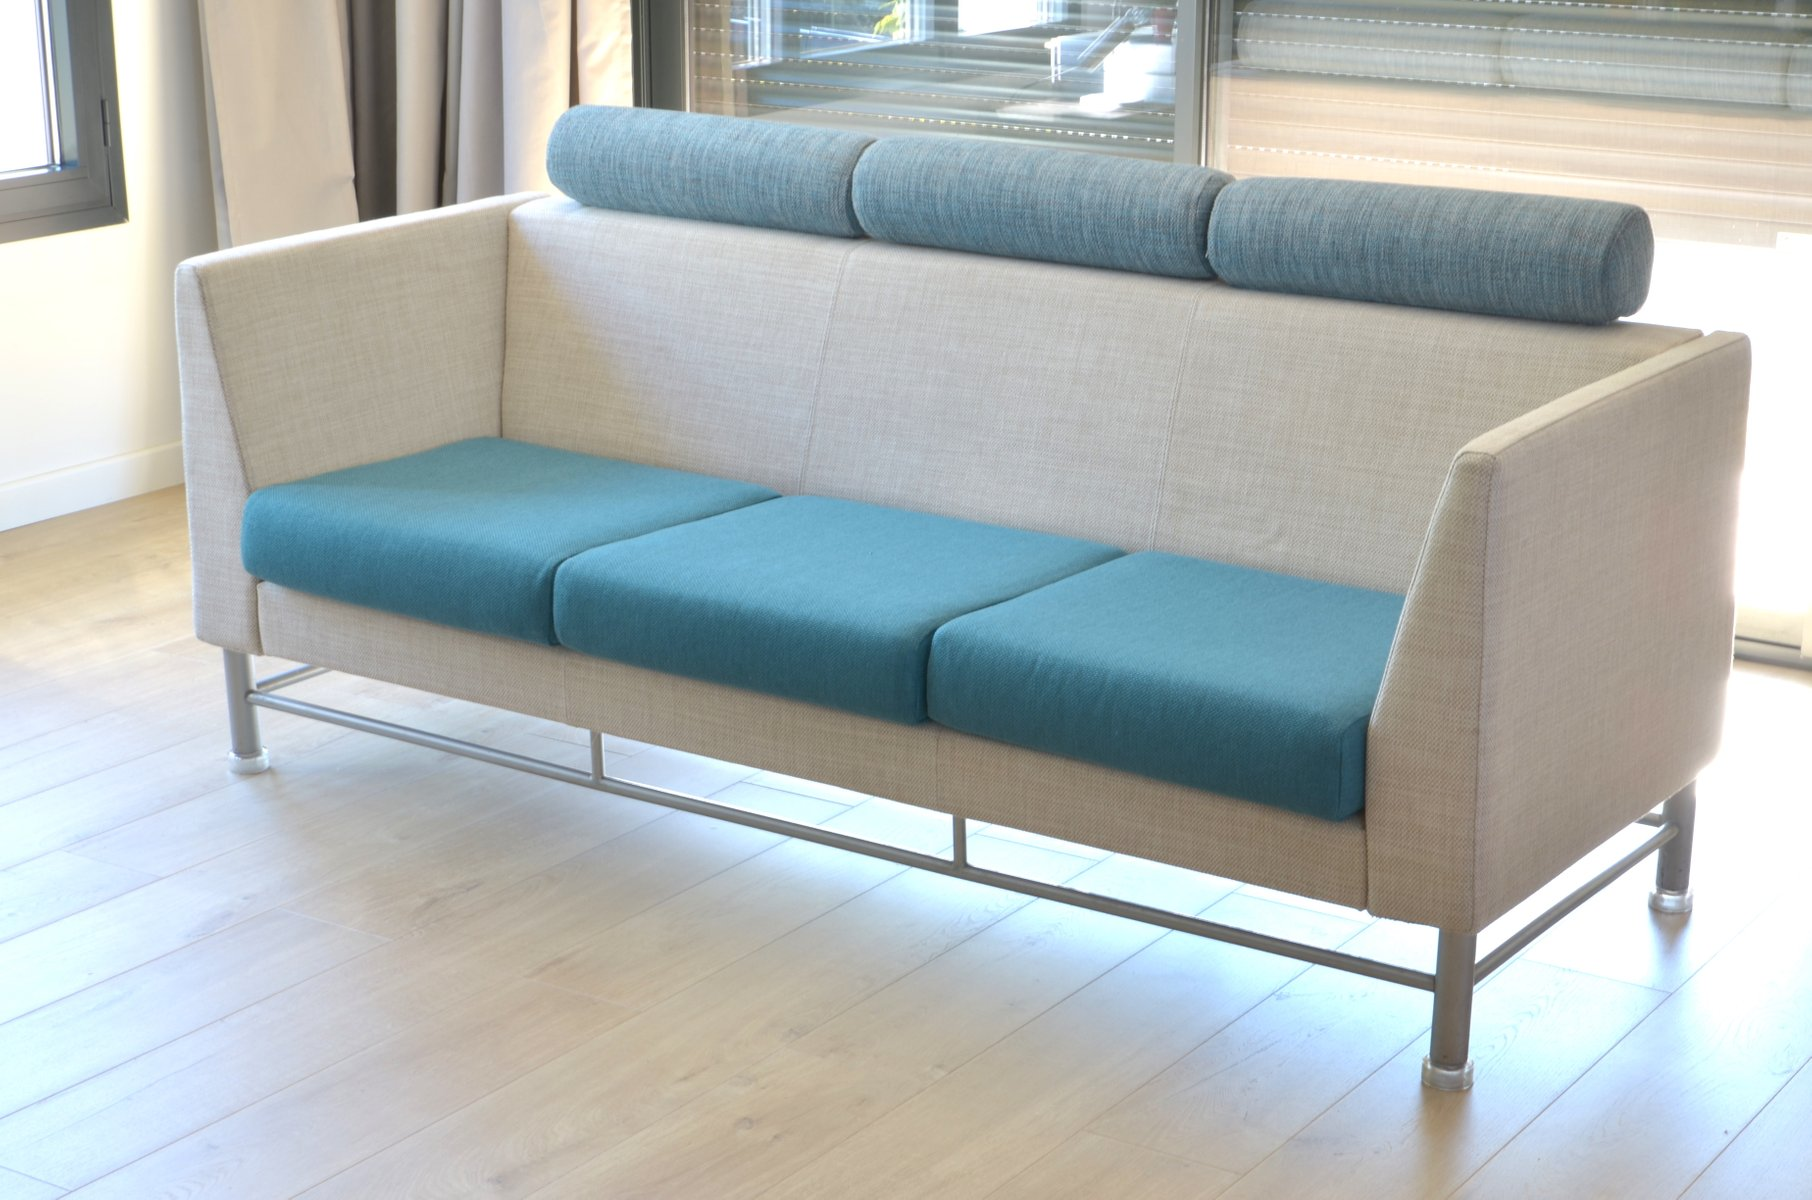 Vintage Eastside Sofa By Ettore Sotts For Knoll